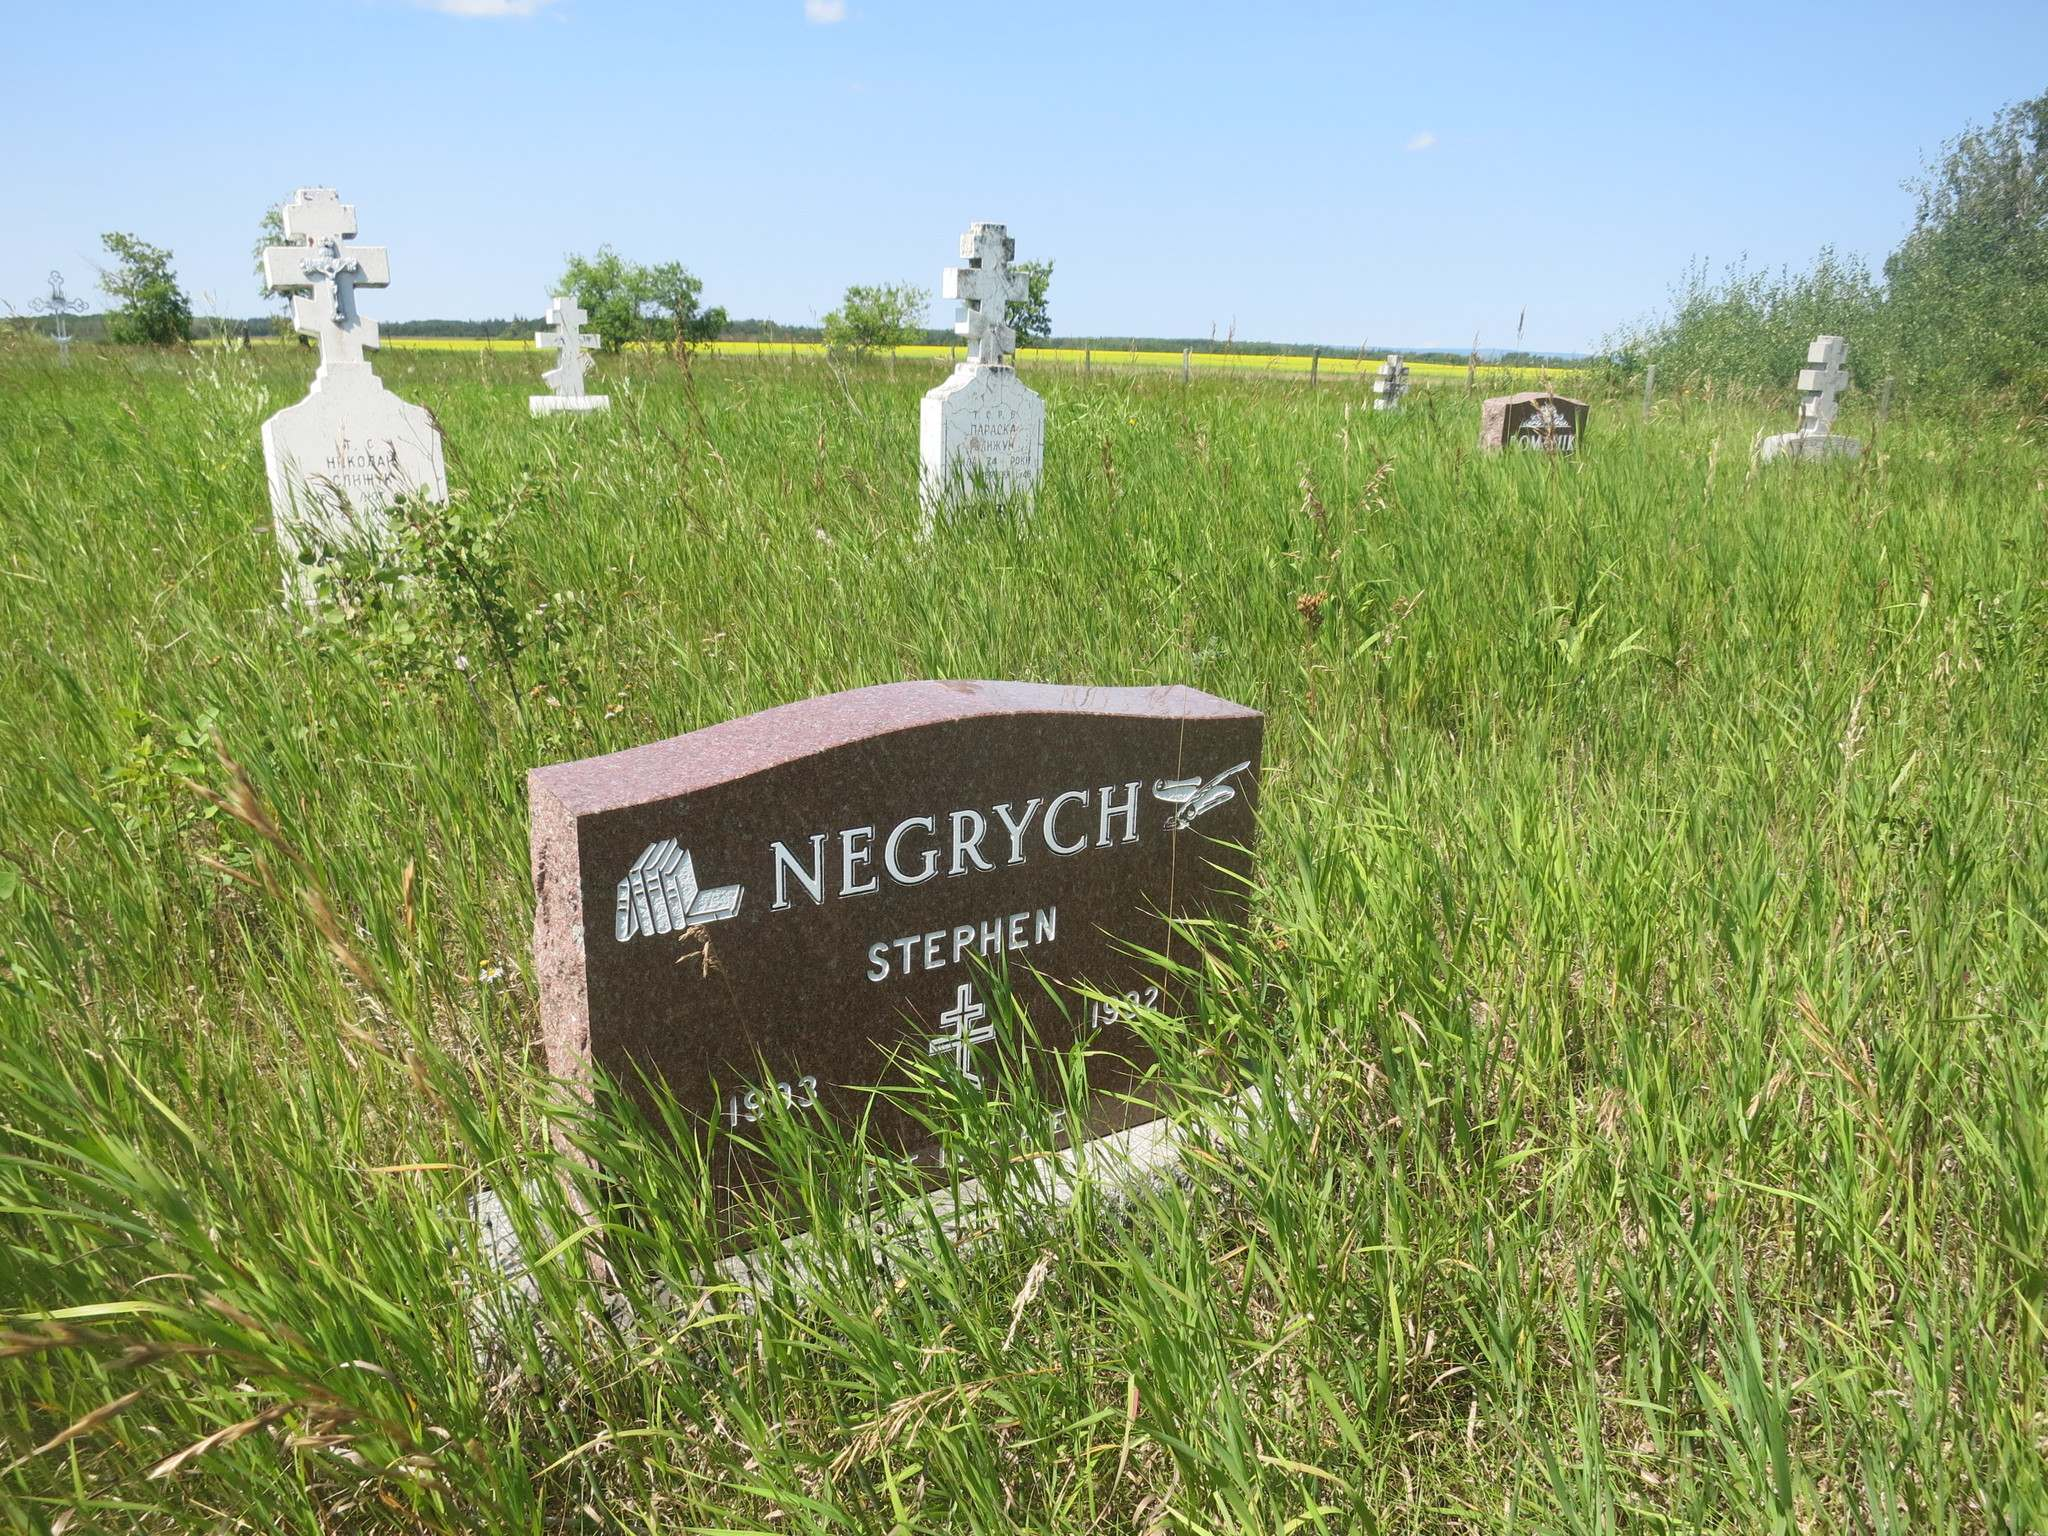 Stephen and other Negrych family members are buried in a cemetery two kilometres from the farm site.</p></p>